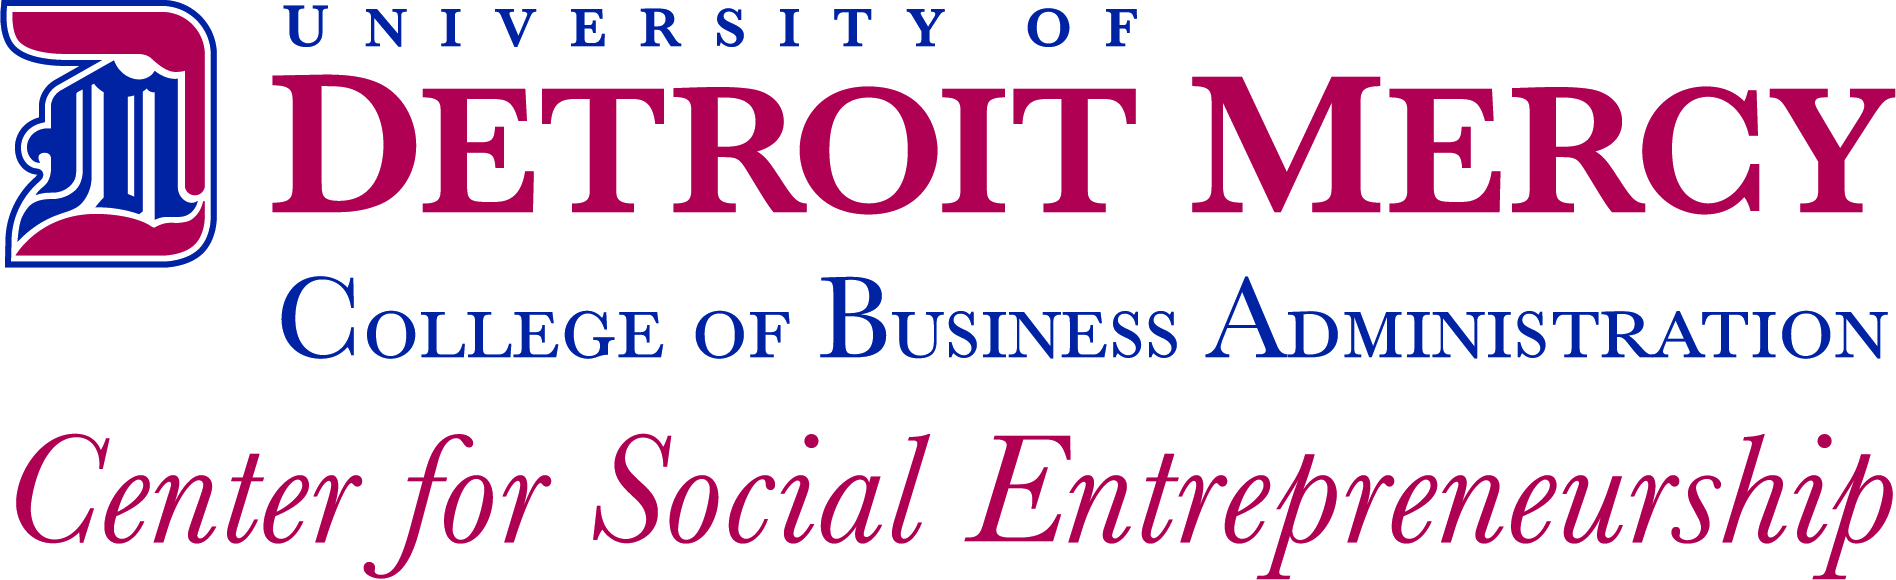 logo for the University of Detroit Mercy's Center for Social Entrepreneurship